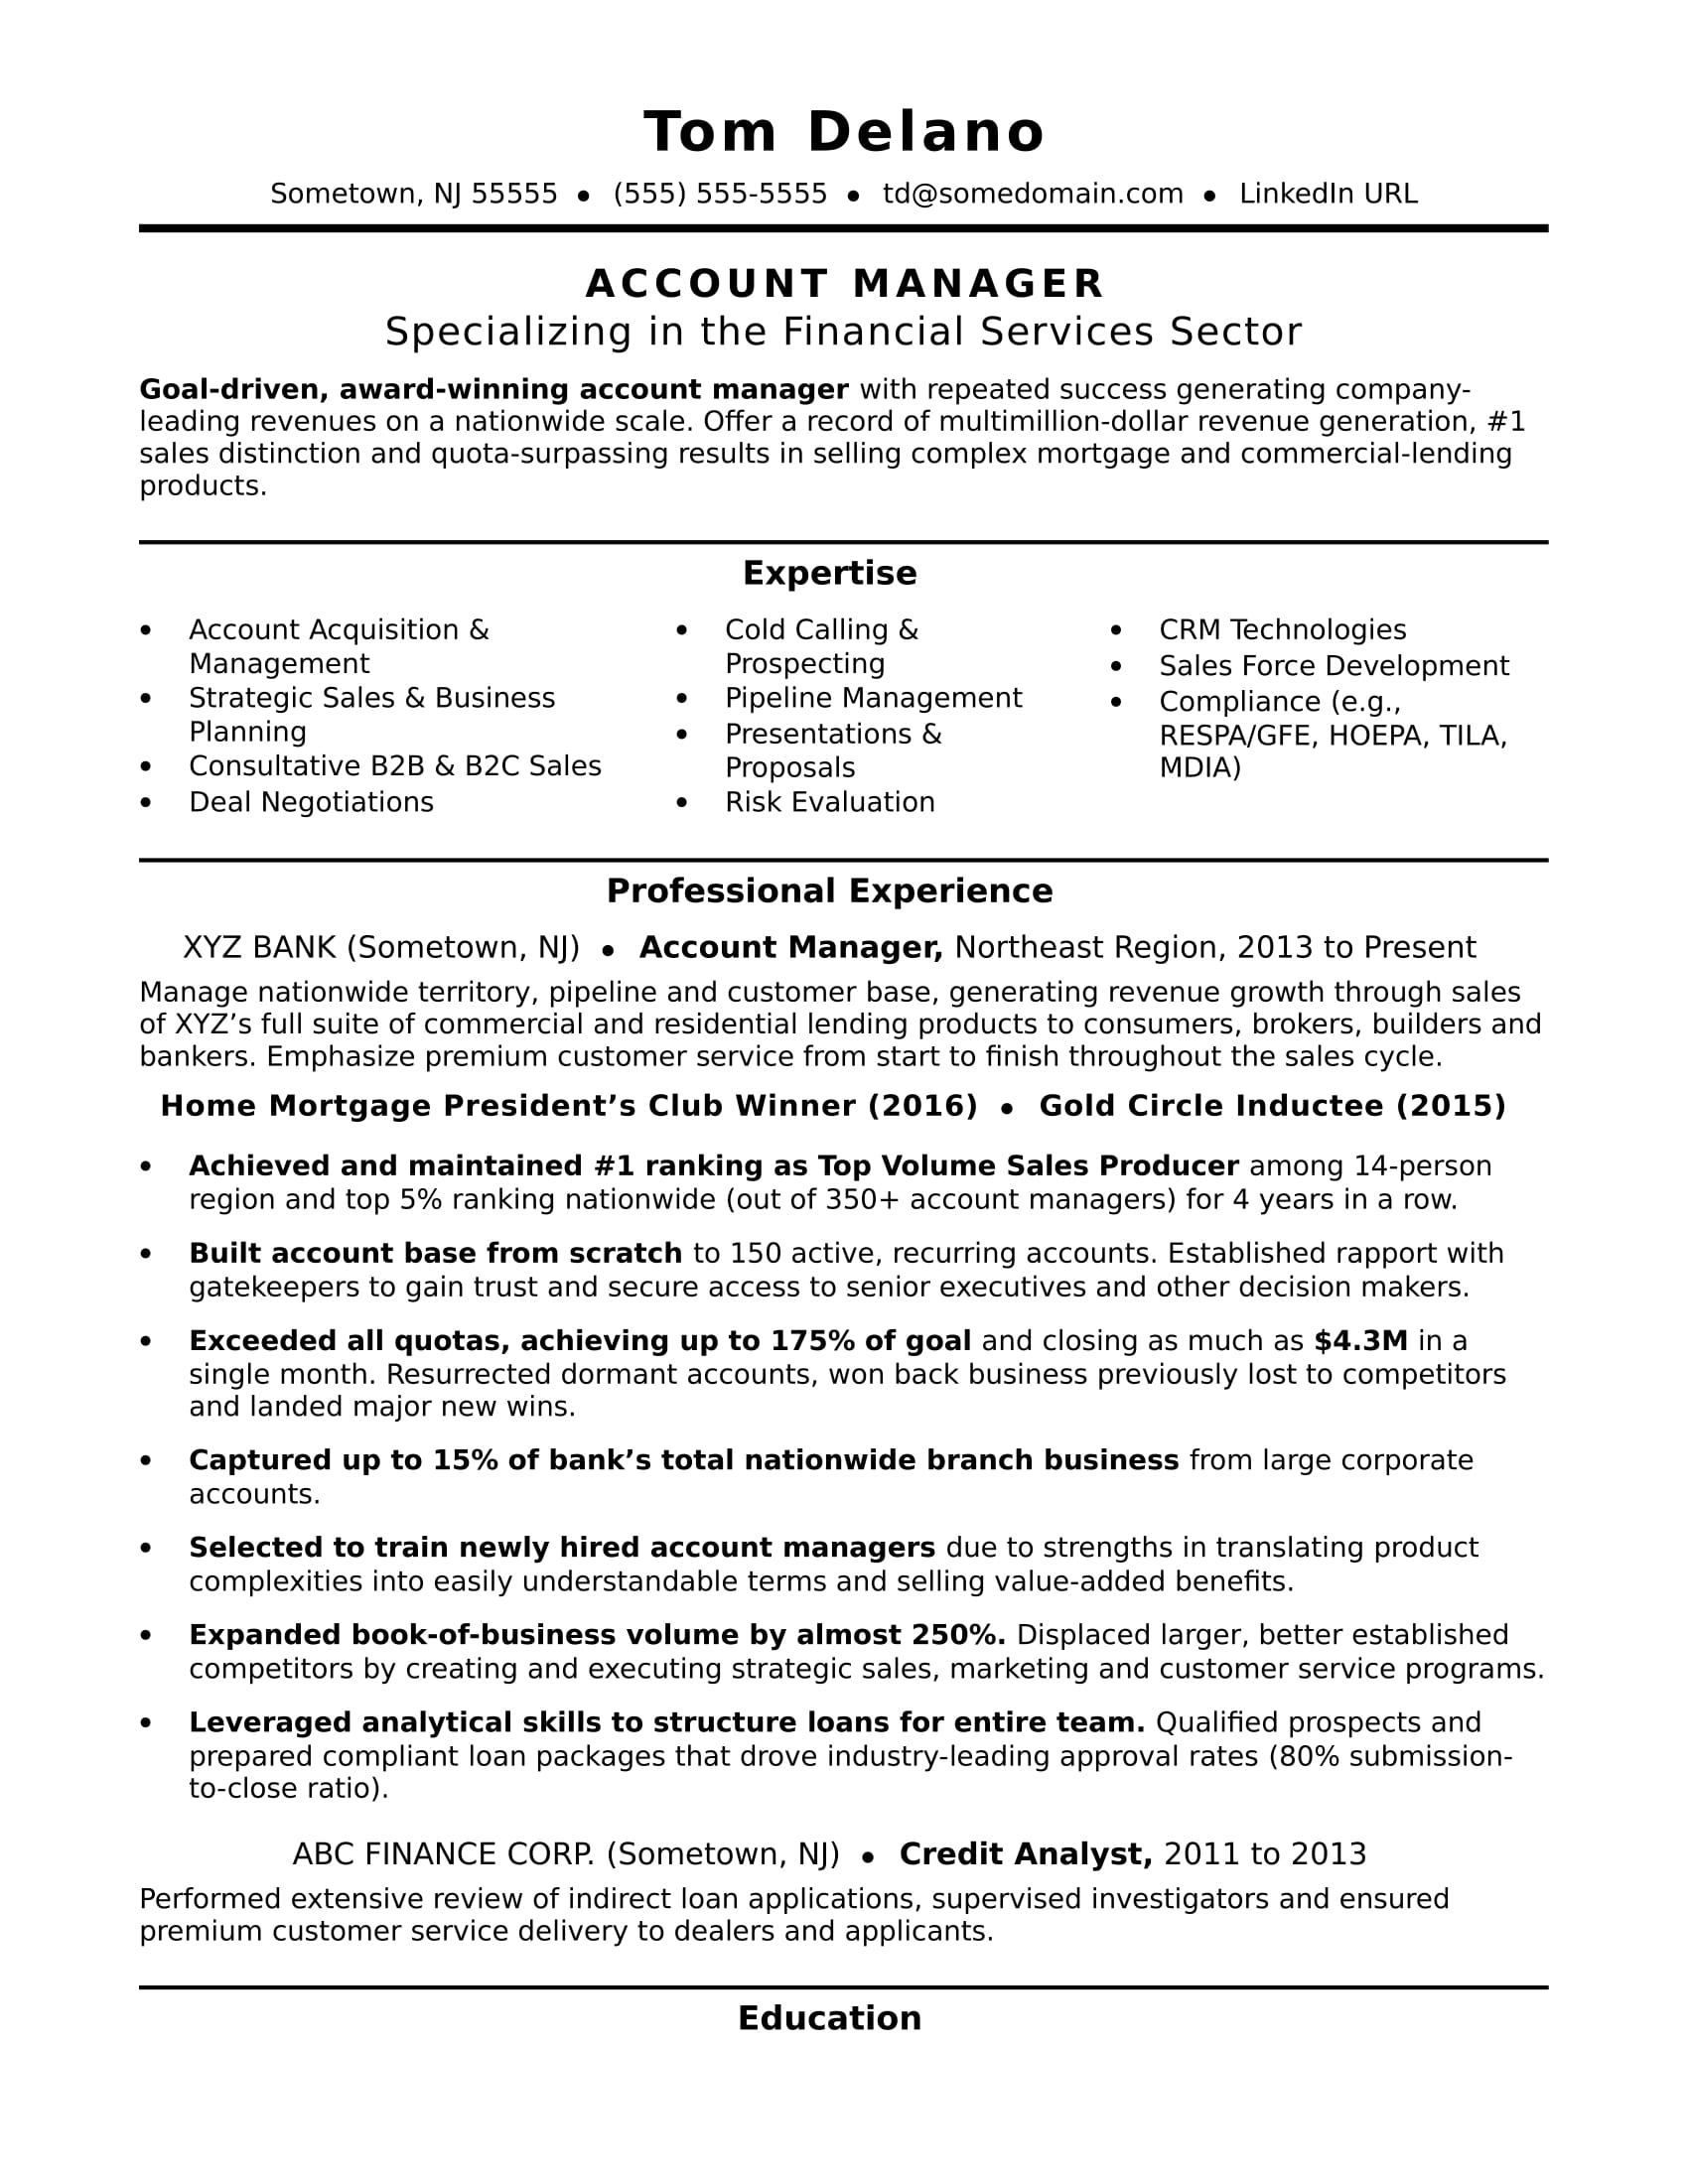 account manager resume sample monster accounts format agribusiness office assistant Resume Accounts Manager Resume Format